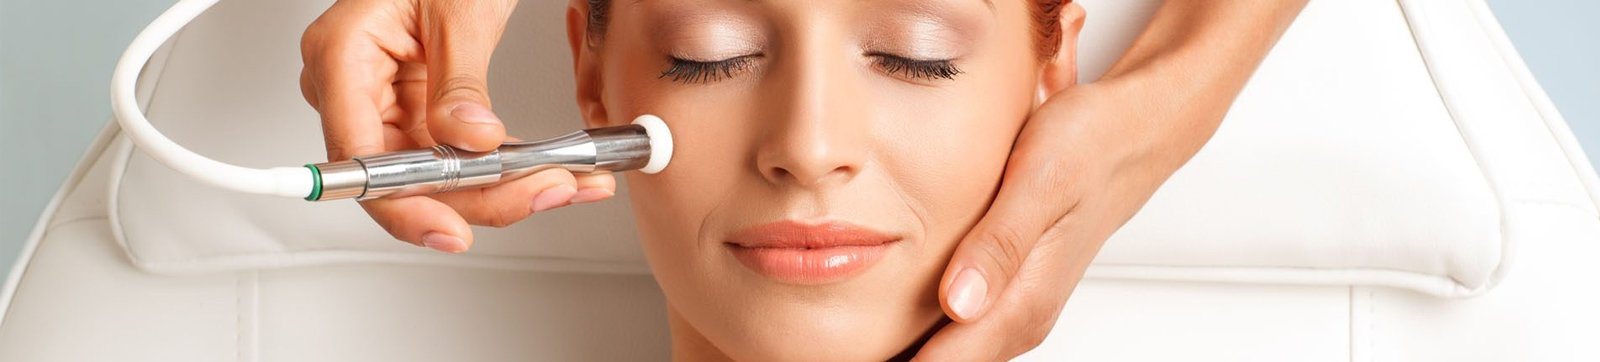 microdermabrasion treatment in delhi